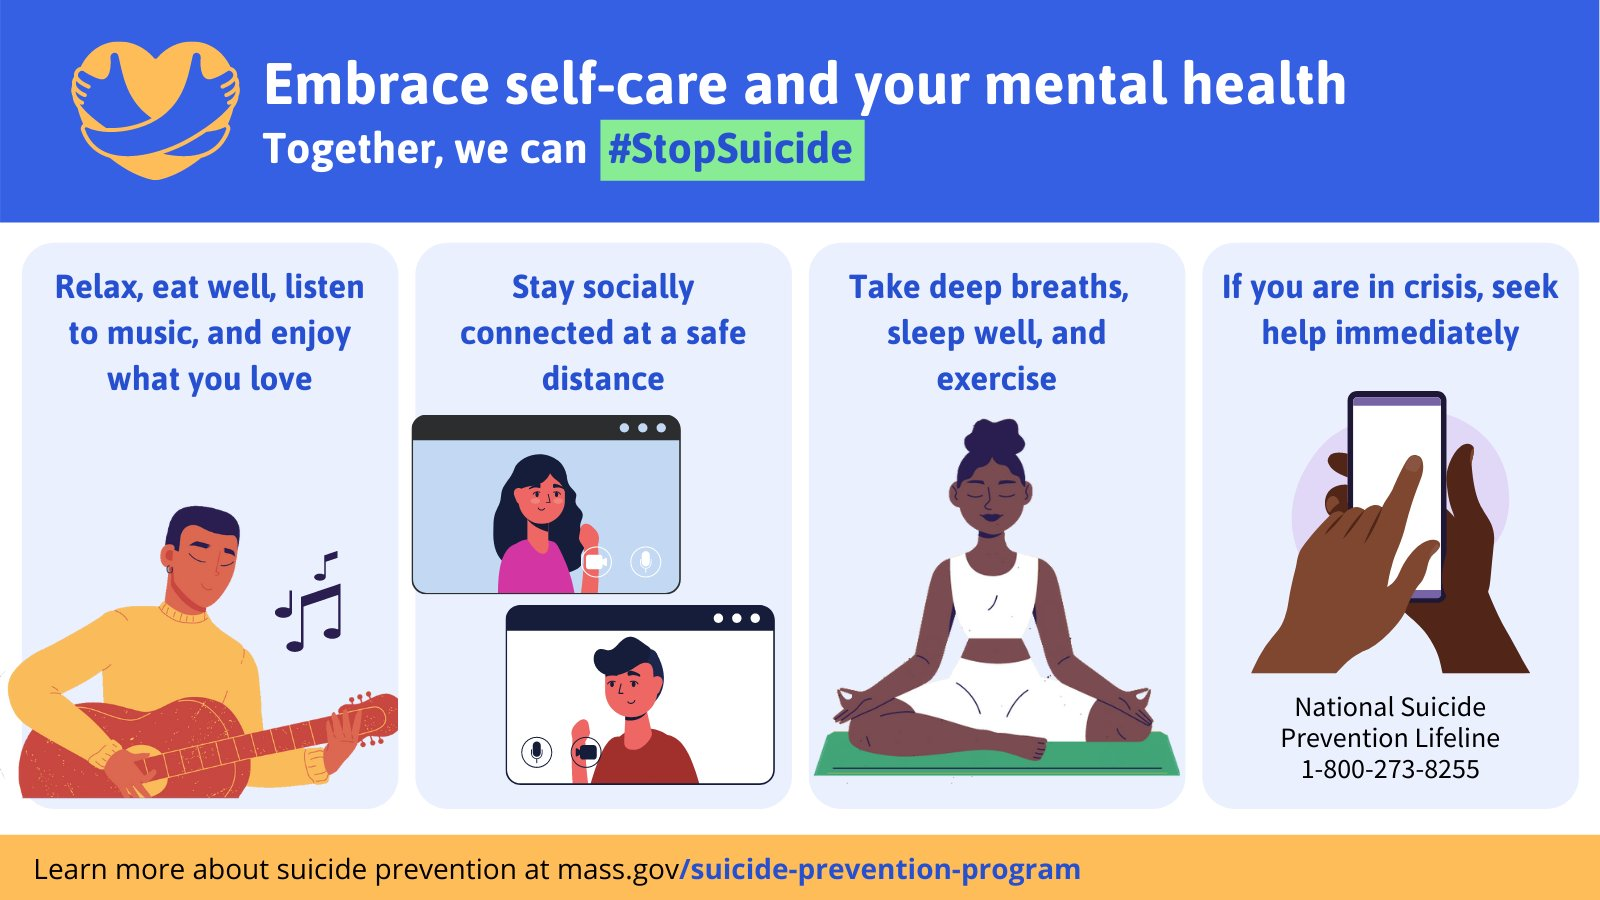 Mass. Public Health reminds us to practice self-care and support your mental health